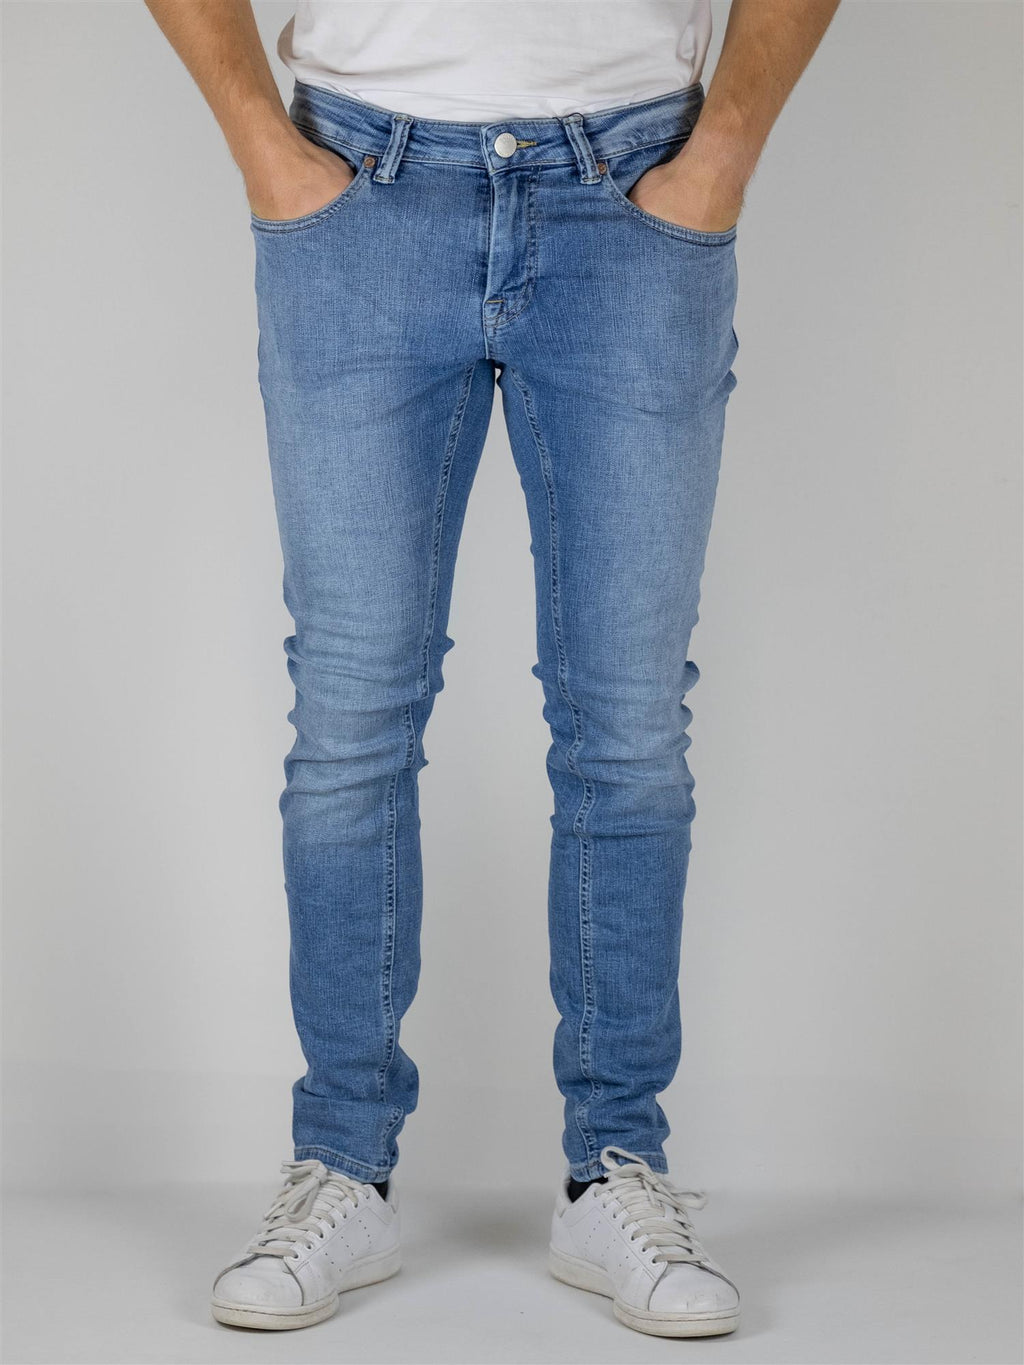 Jones Flex Jeans K2615 - Light Bright